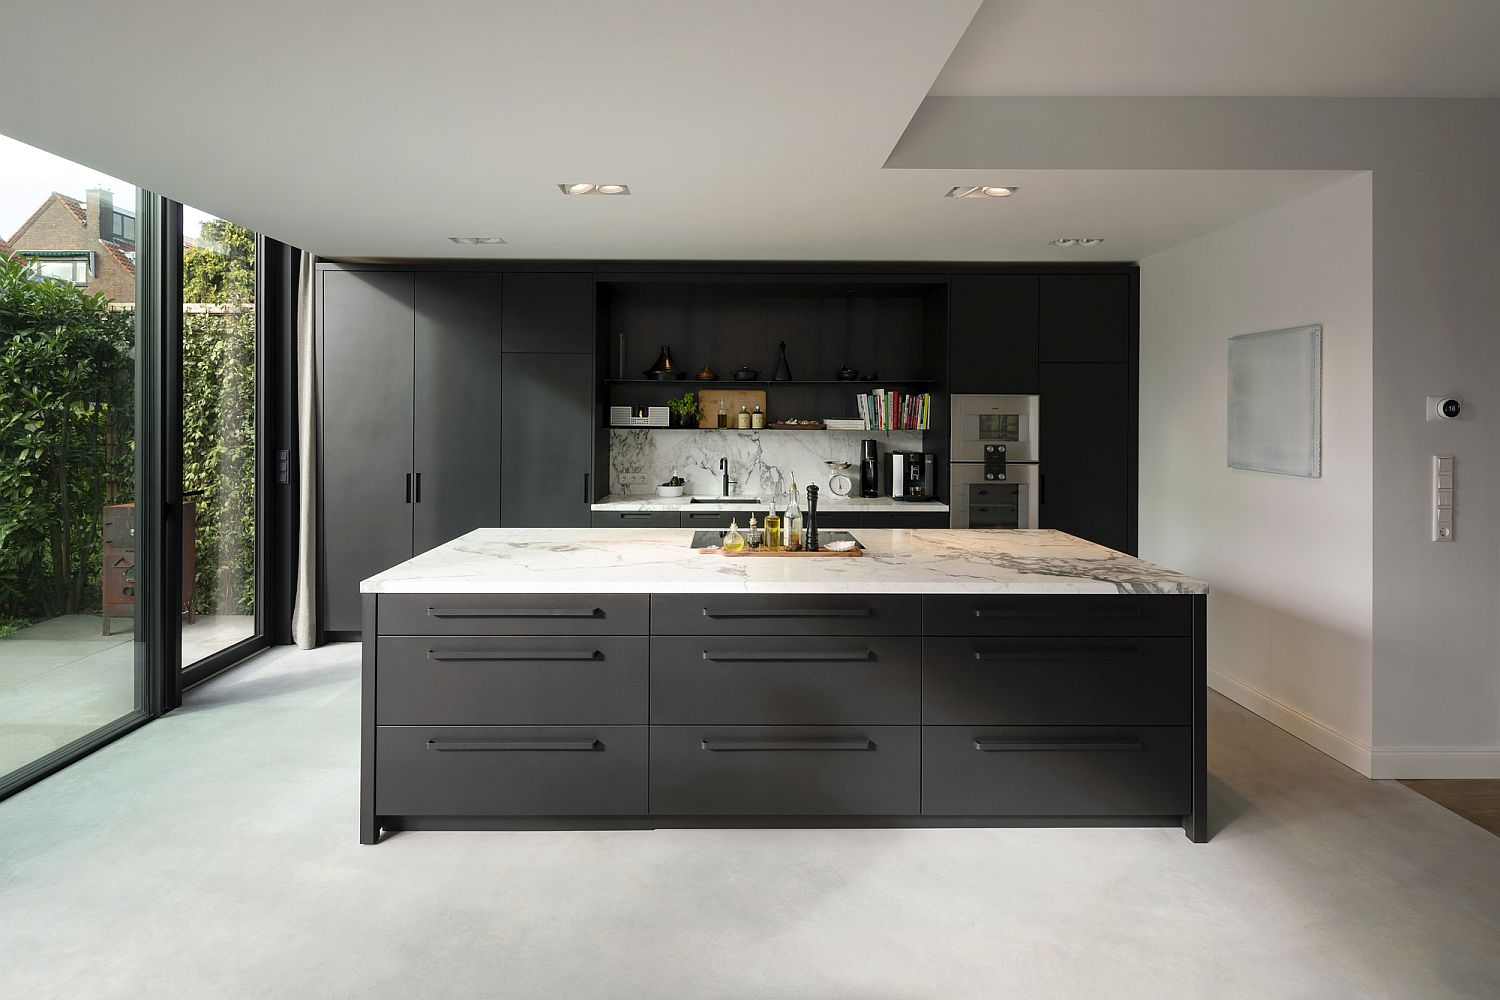 White kitchen with marble countertops and dark island along with dark gray shelving